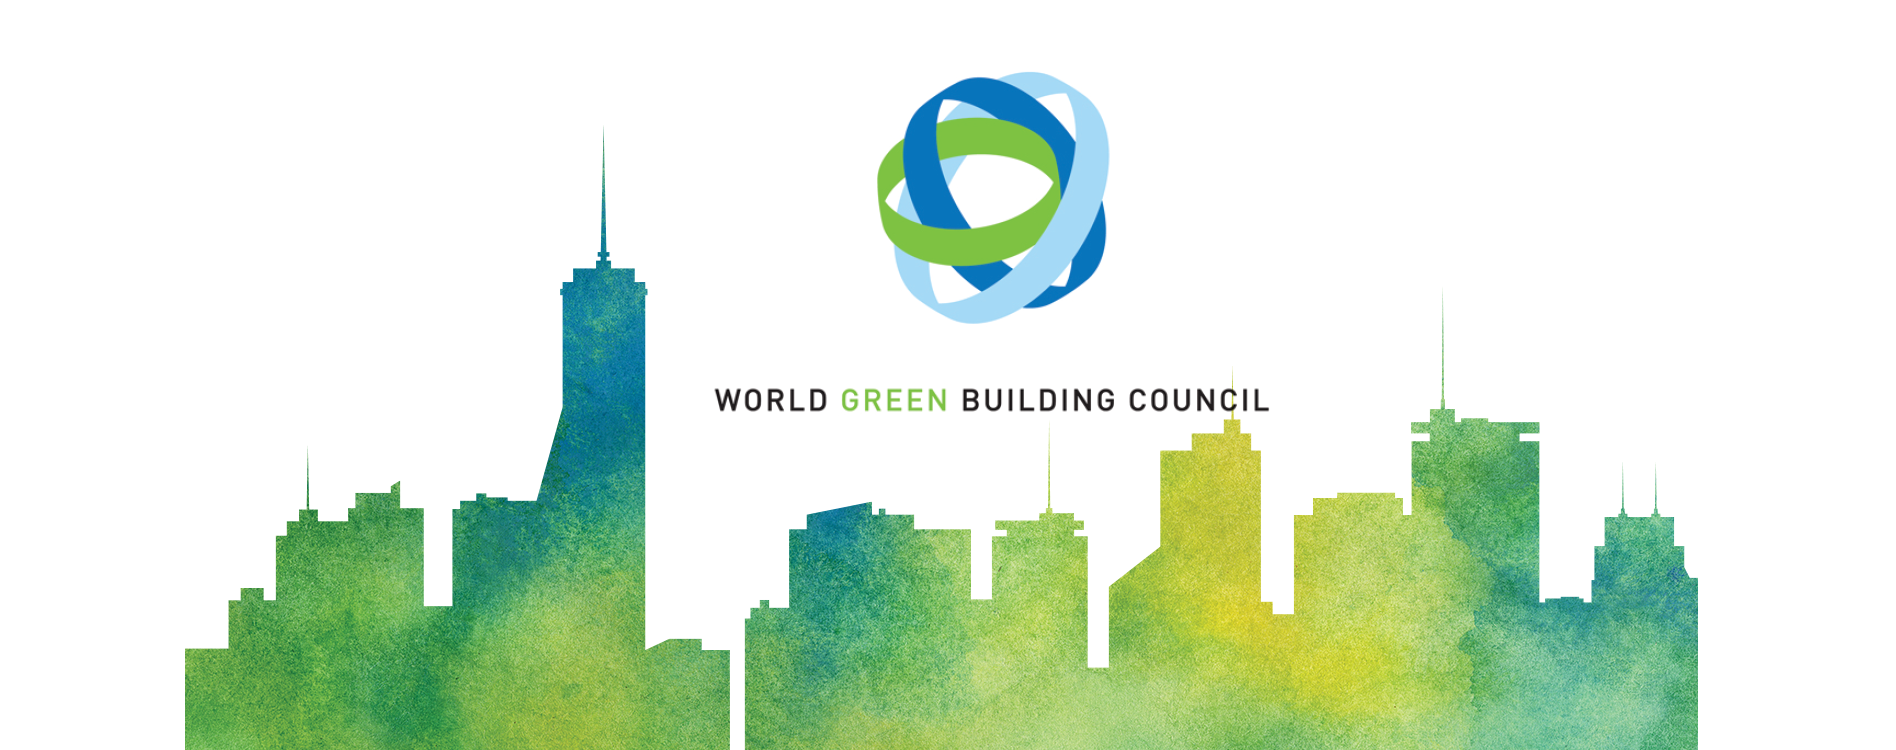 Join The World In Taking Steps To Green Your Home